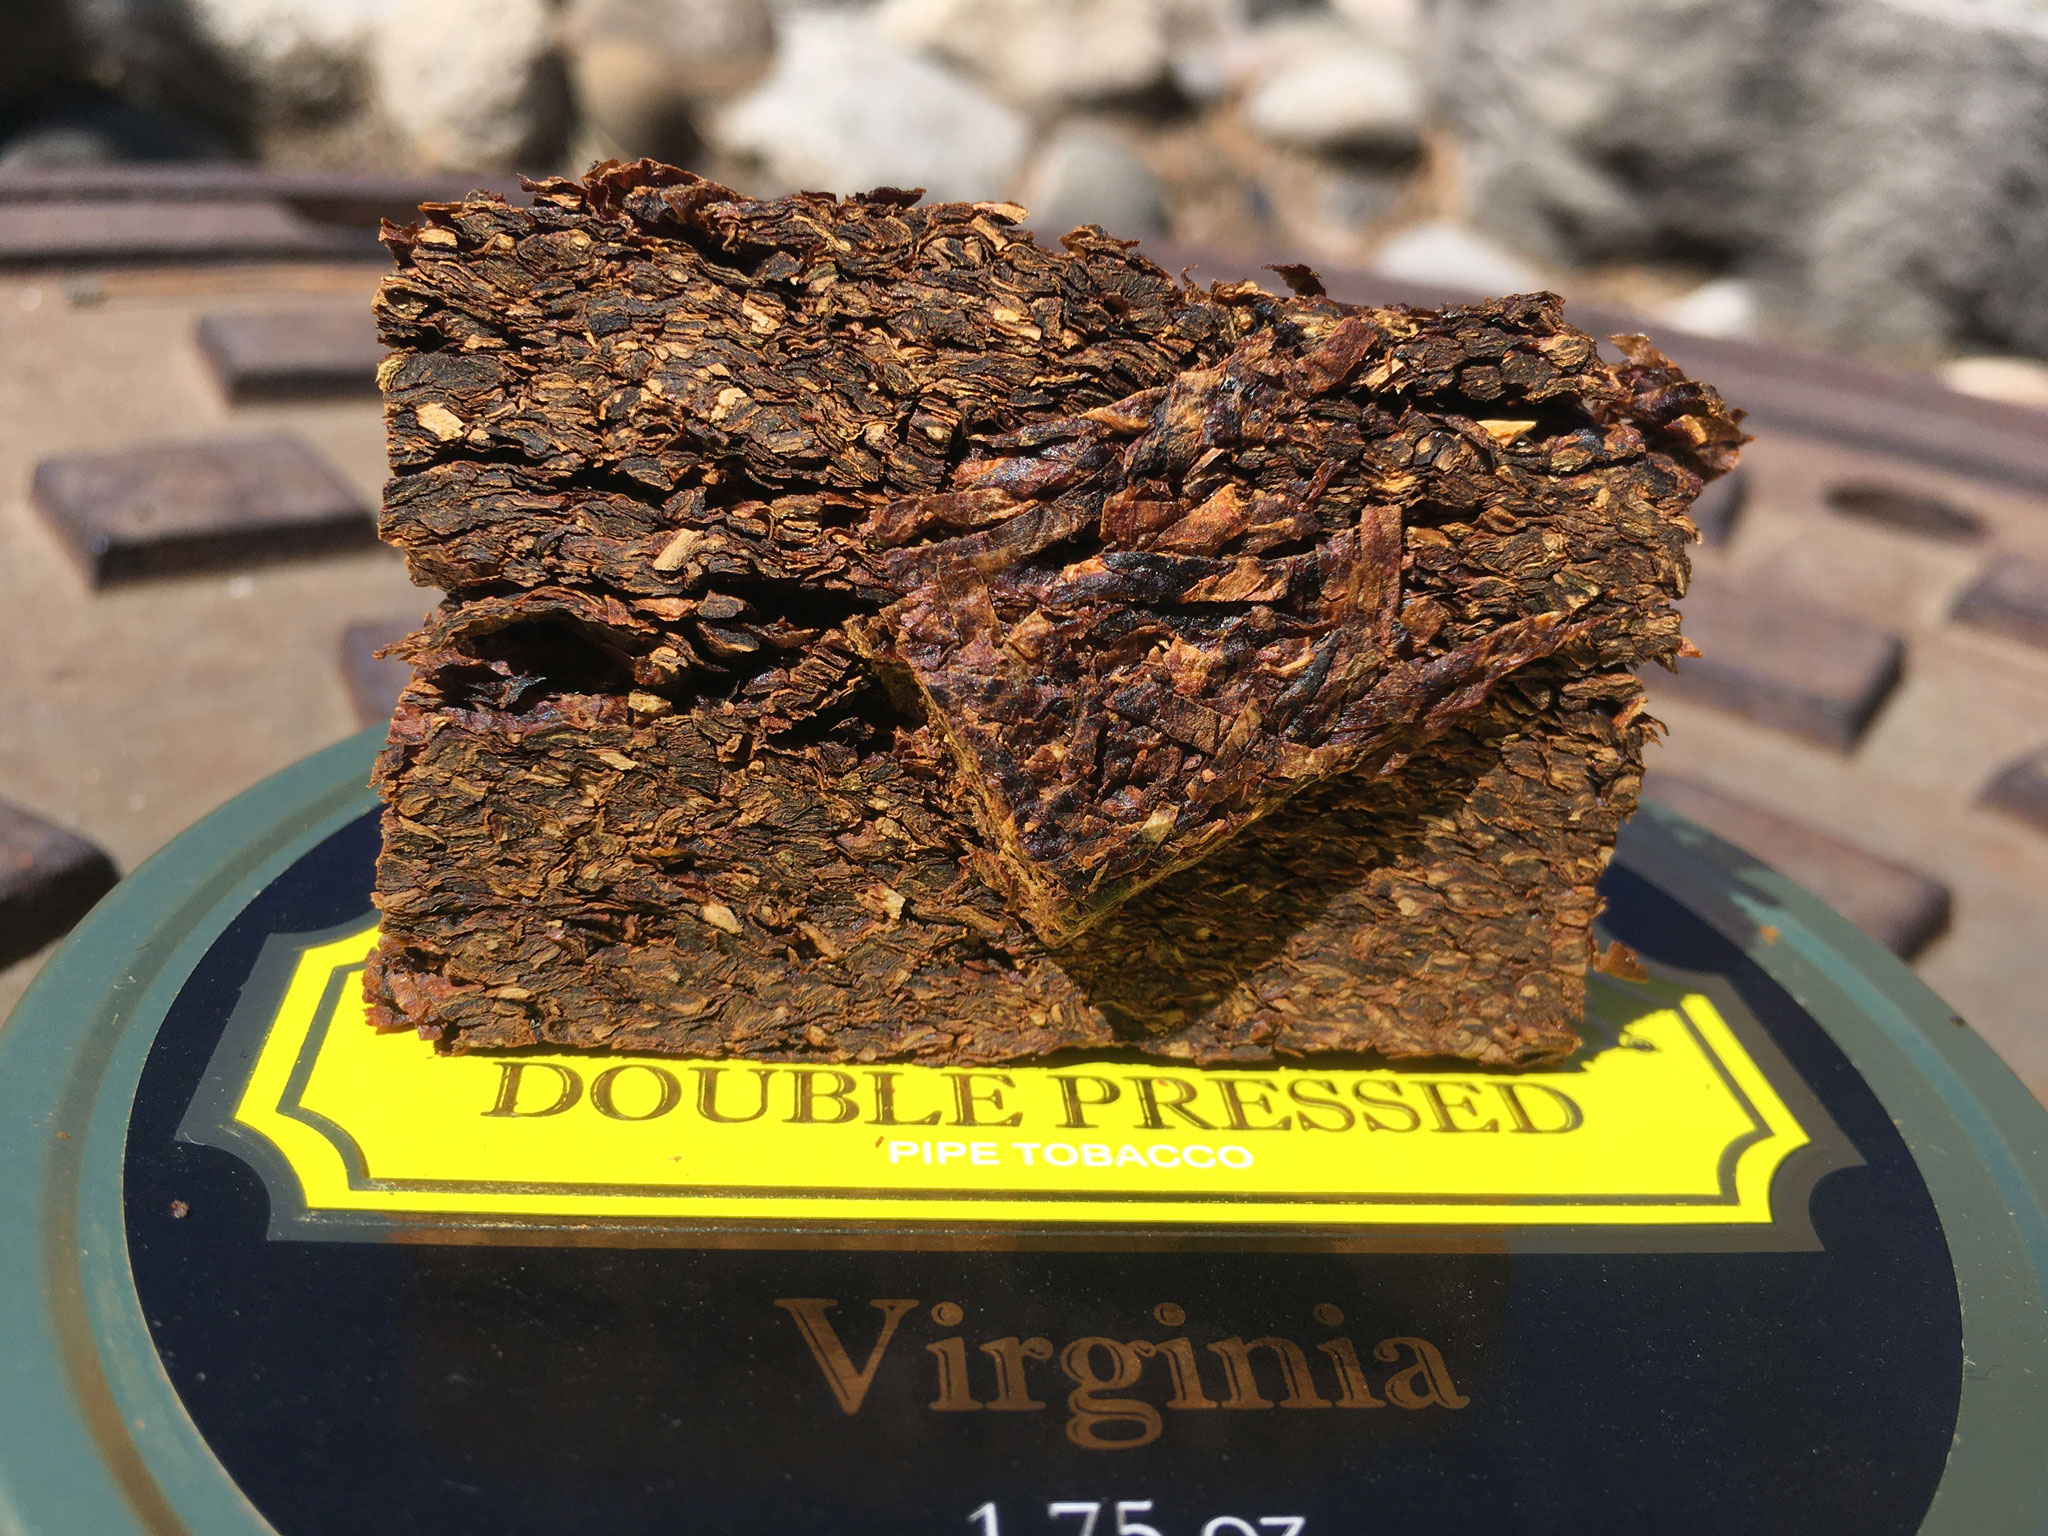 John Cotton's Double Pressed Virginia Tobacco